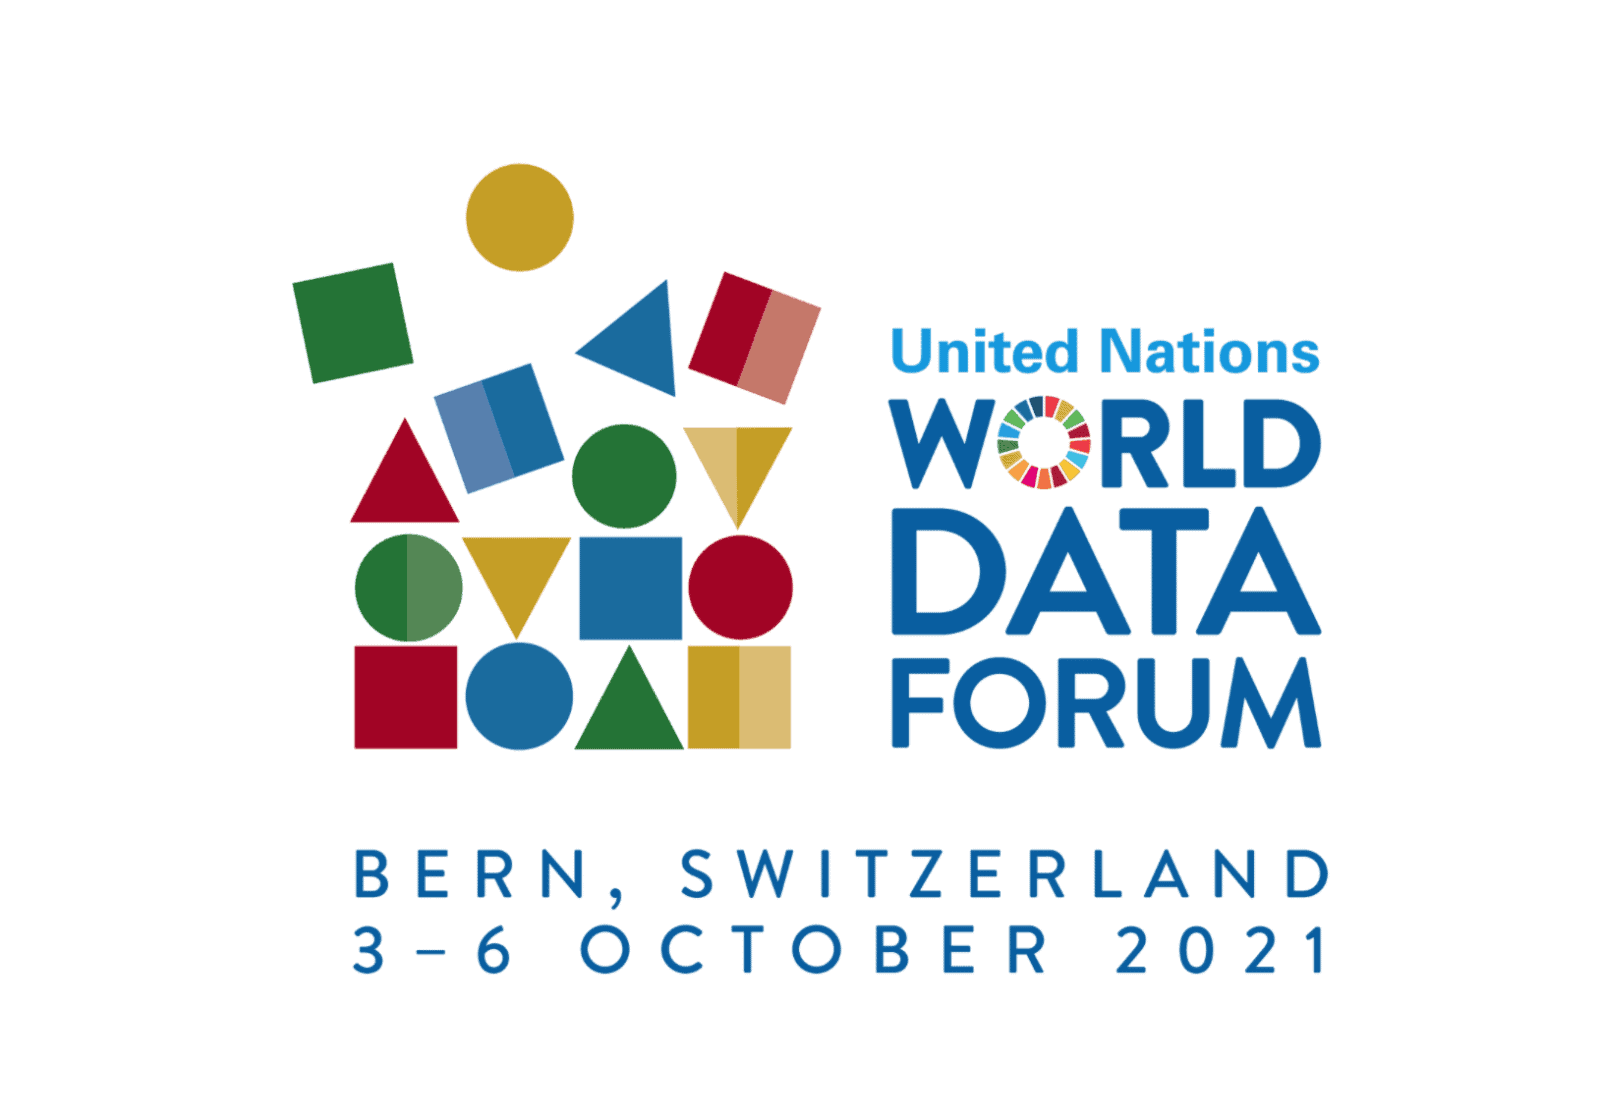 United Nations World Data Forum Virtual Event: Innovative Use of Social Media for Remote Sensing and SDG Monitoring 2